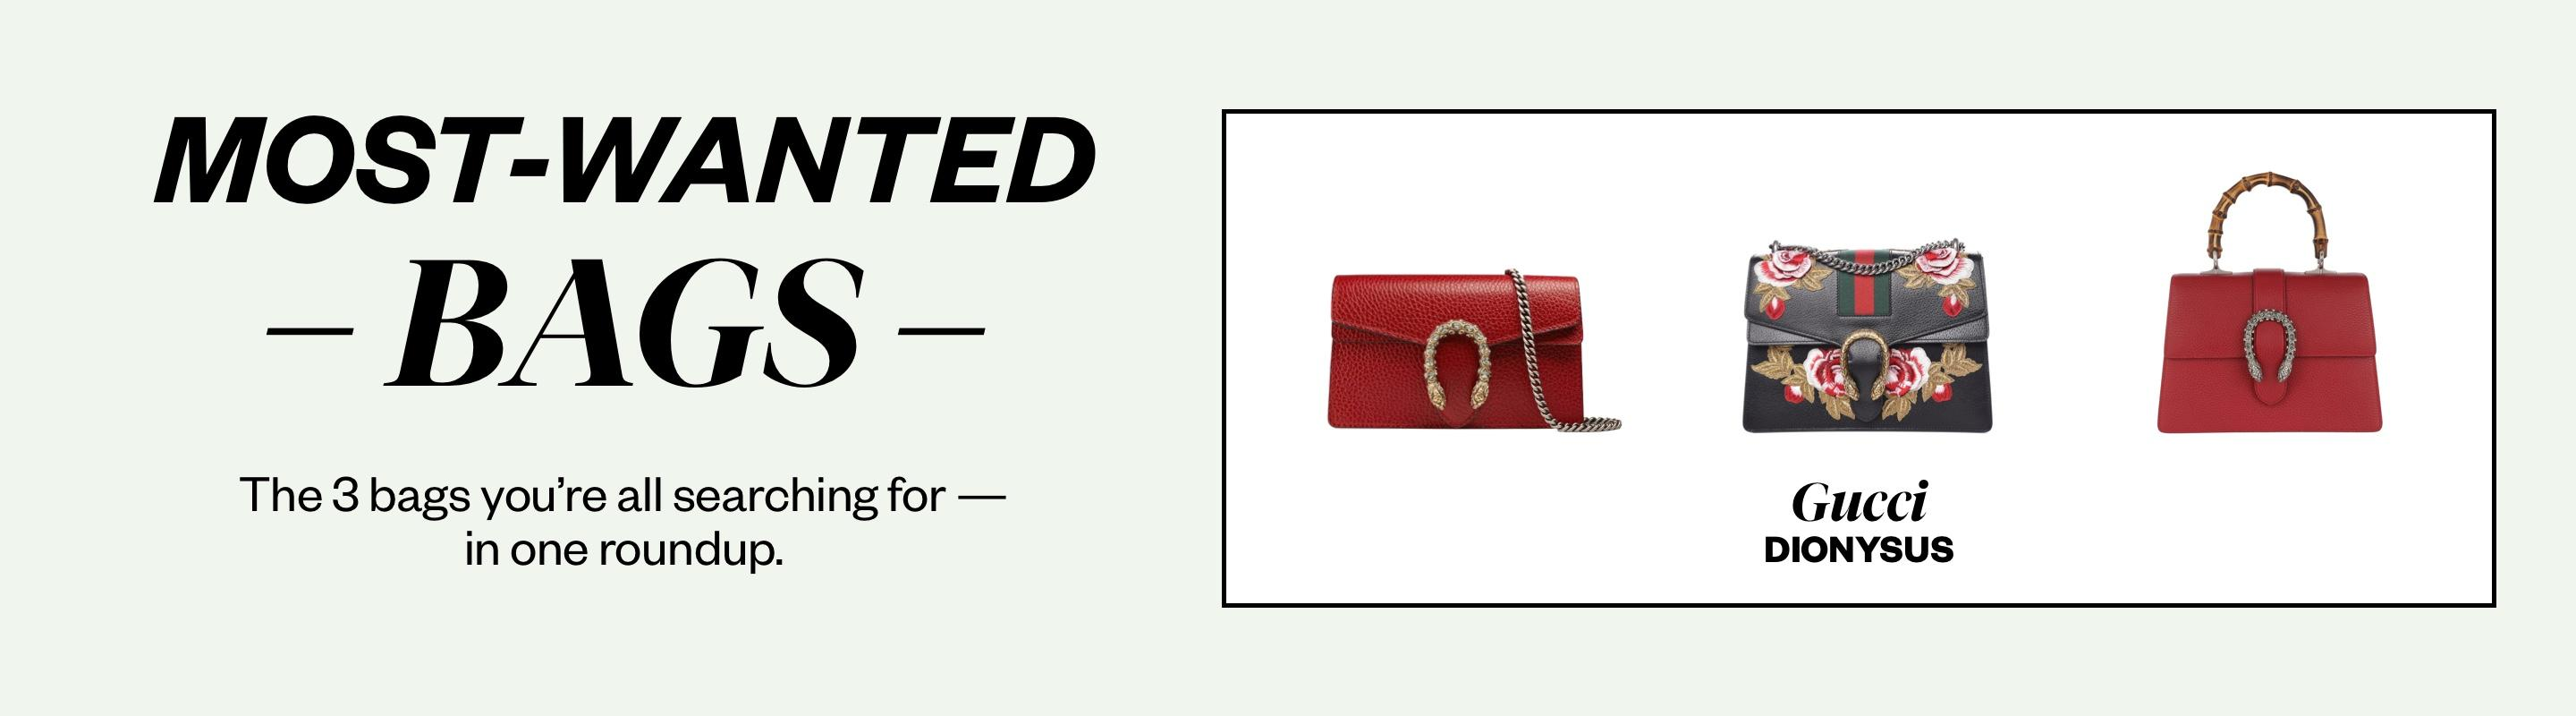 Most Wanted Bags: Gucci Dionysus